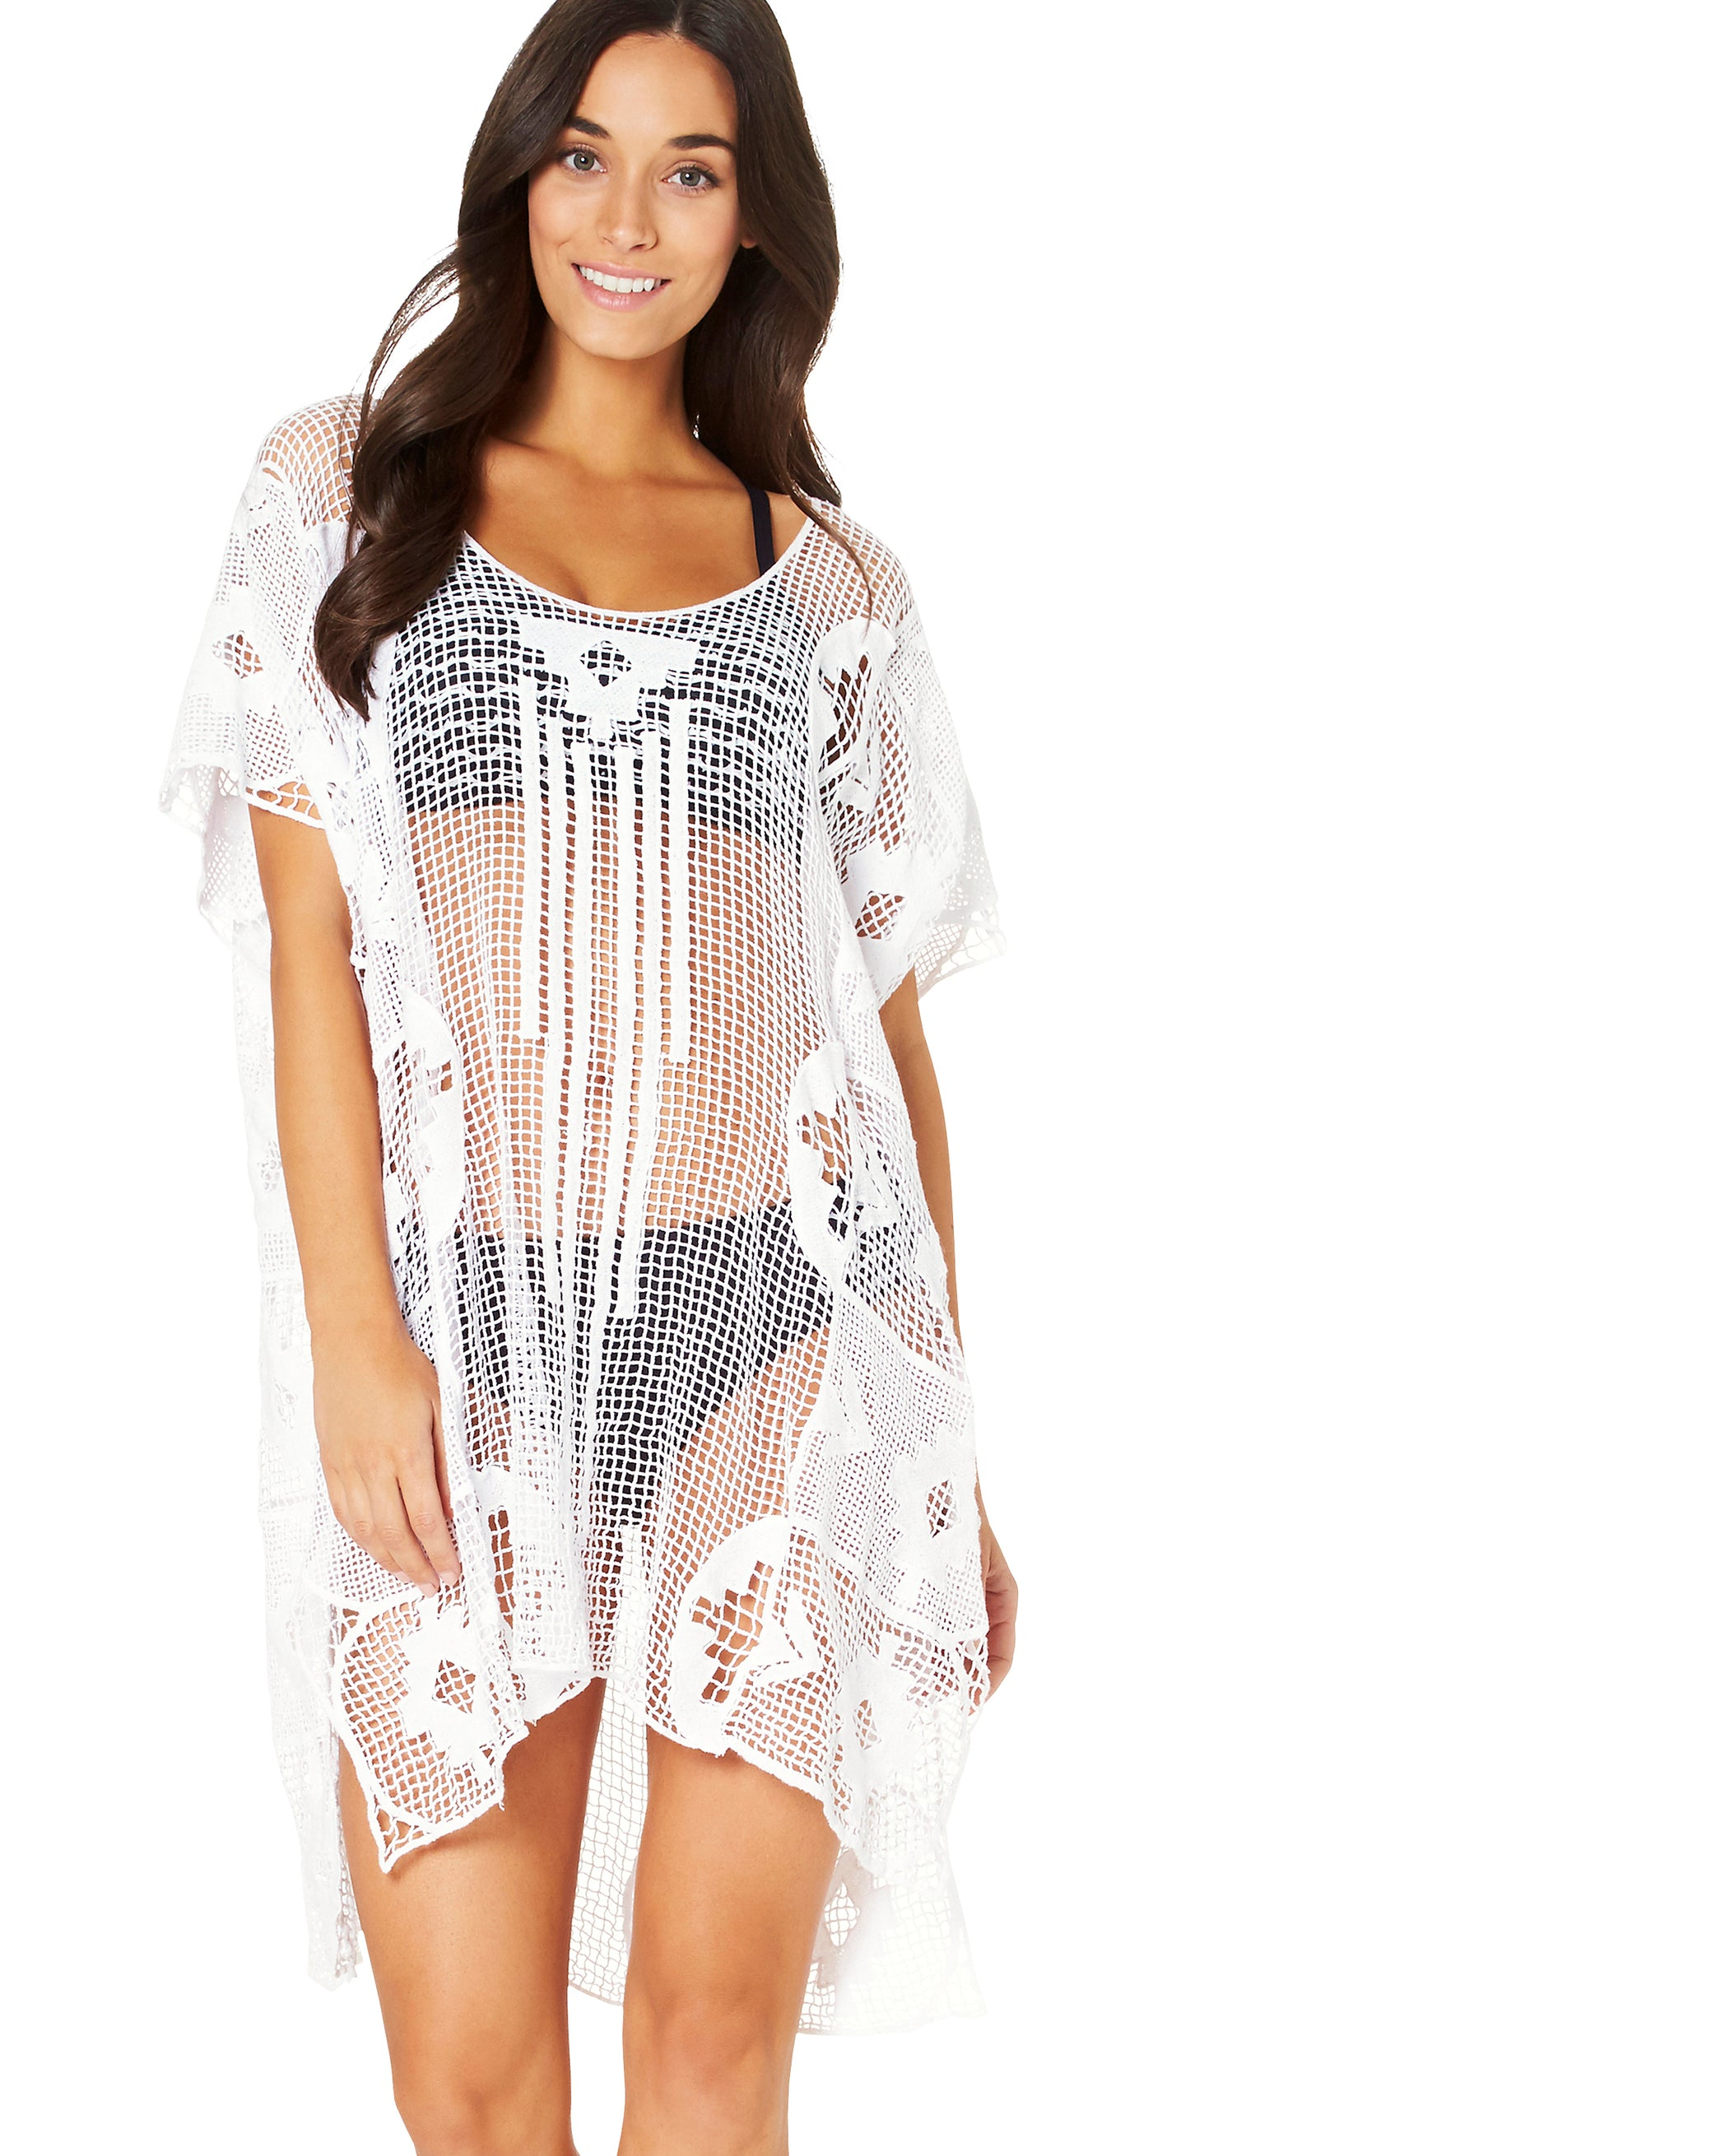 RESORTWEAR BREEZE KAFTAN